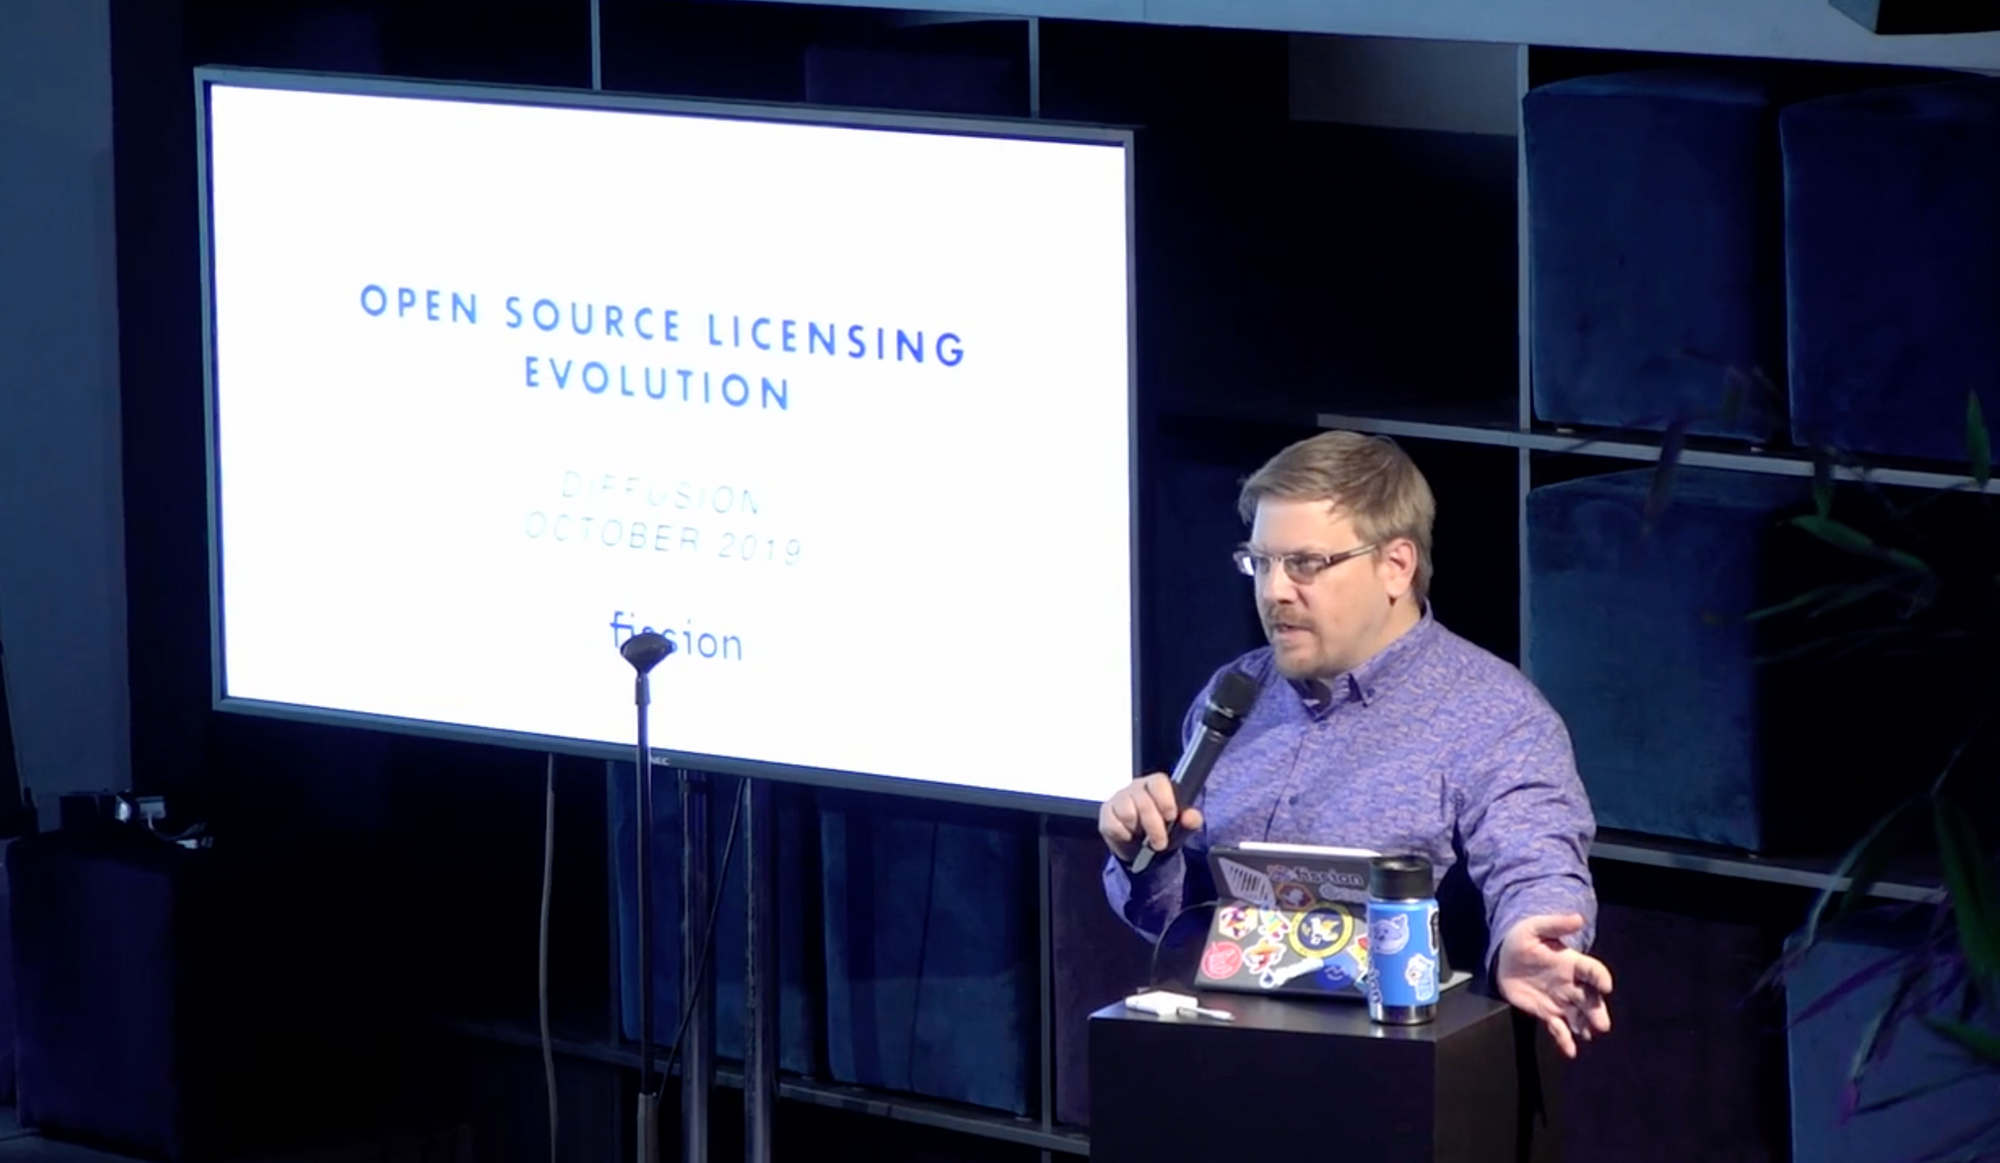 Open Source Licensing Evolution at Diffusion 2019